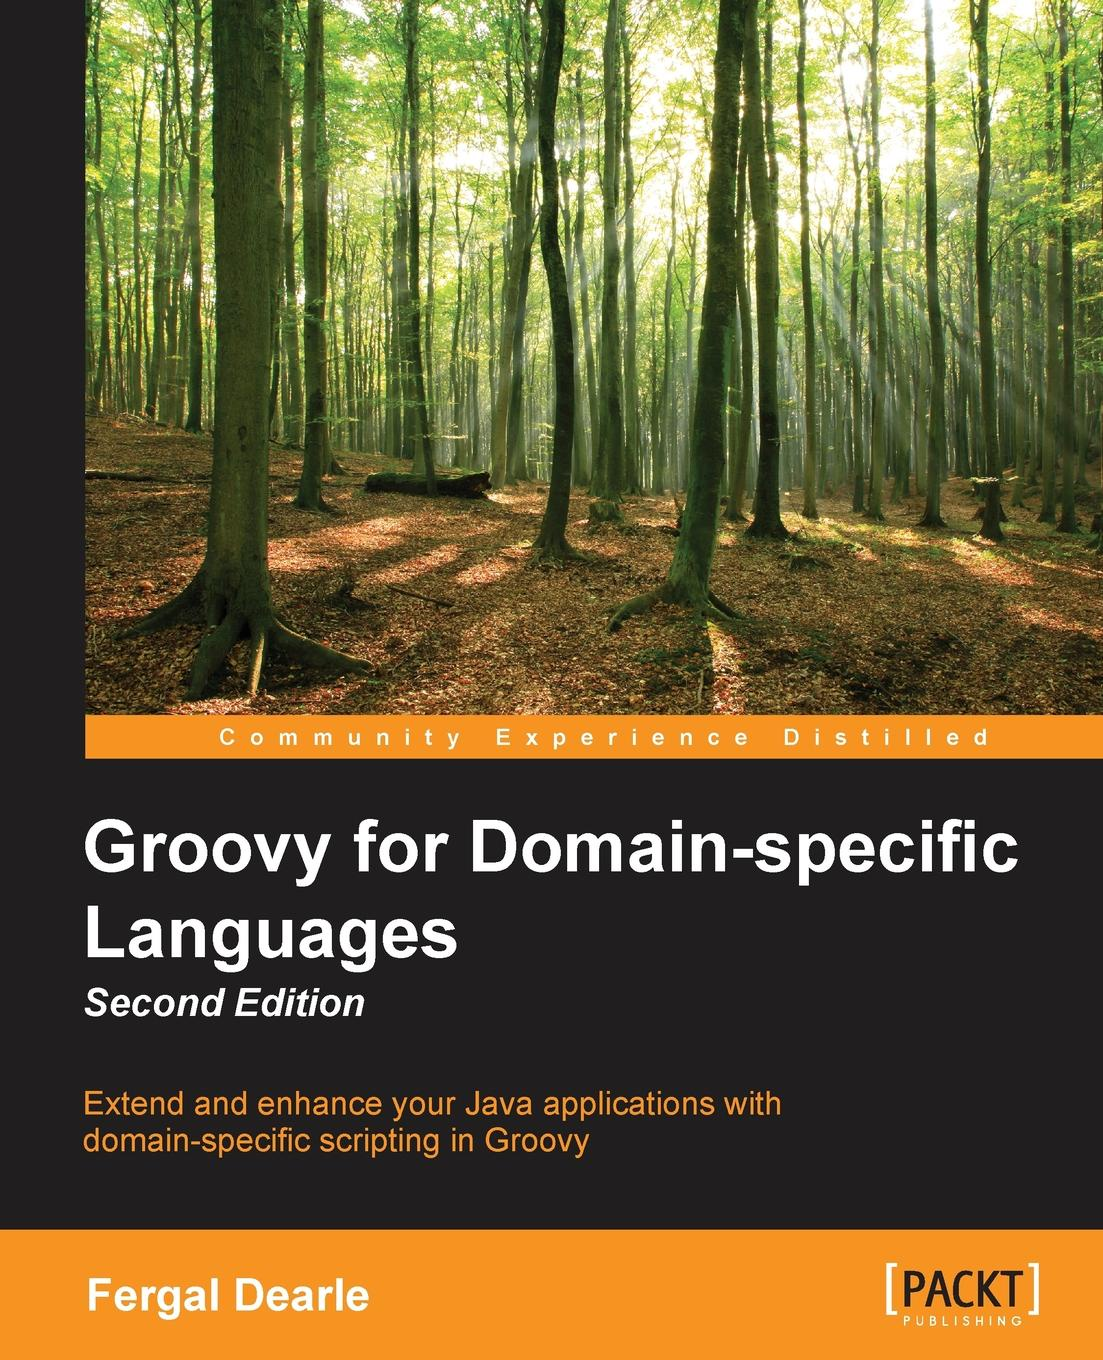 Fergal Dearle Groovy for Domain-Specific Languages - Second Edition